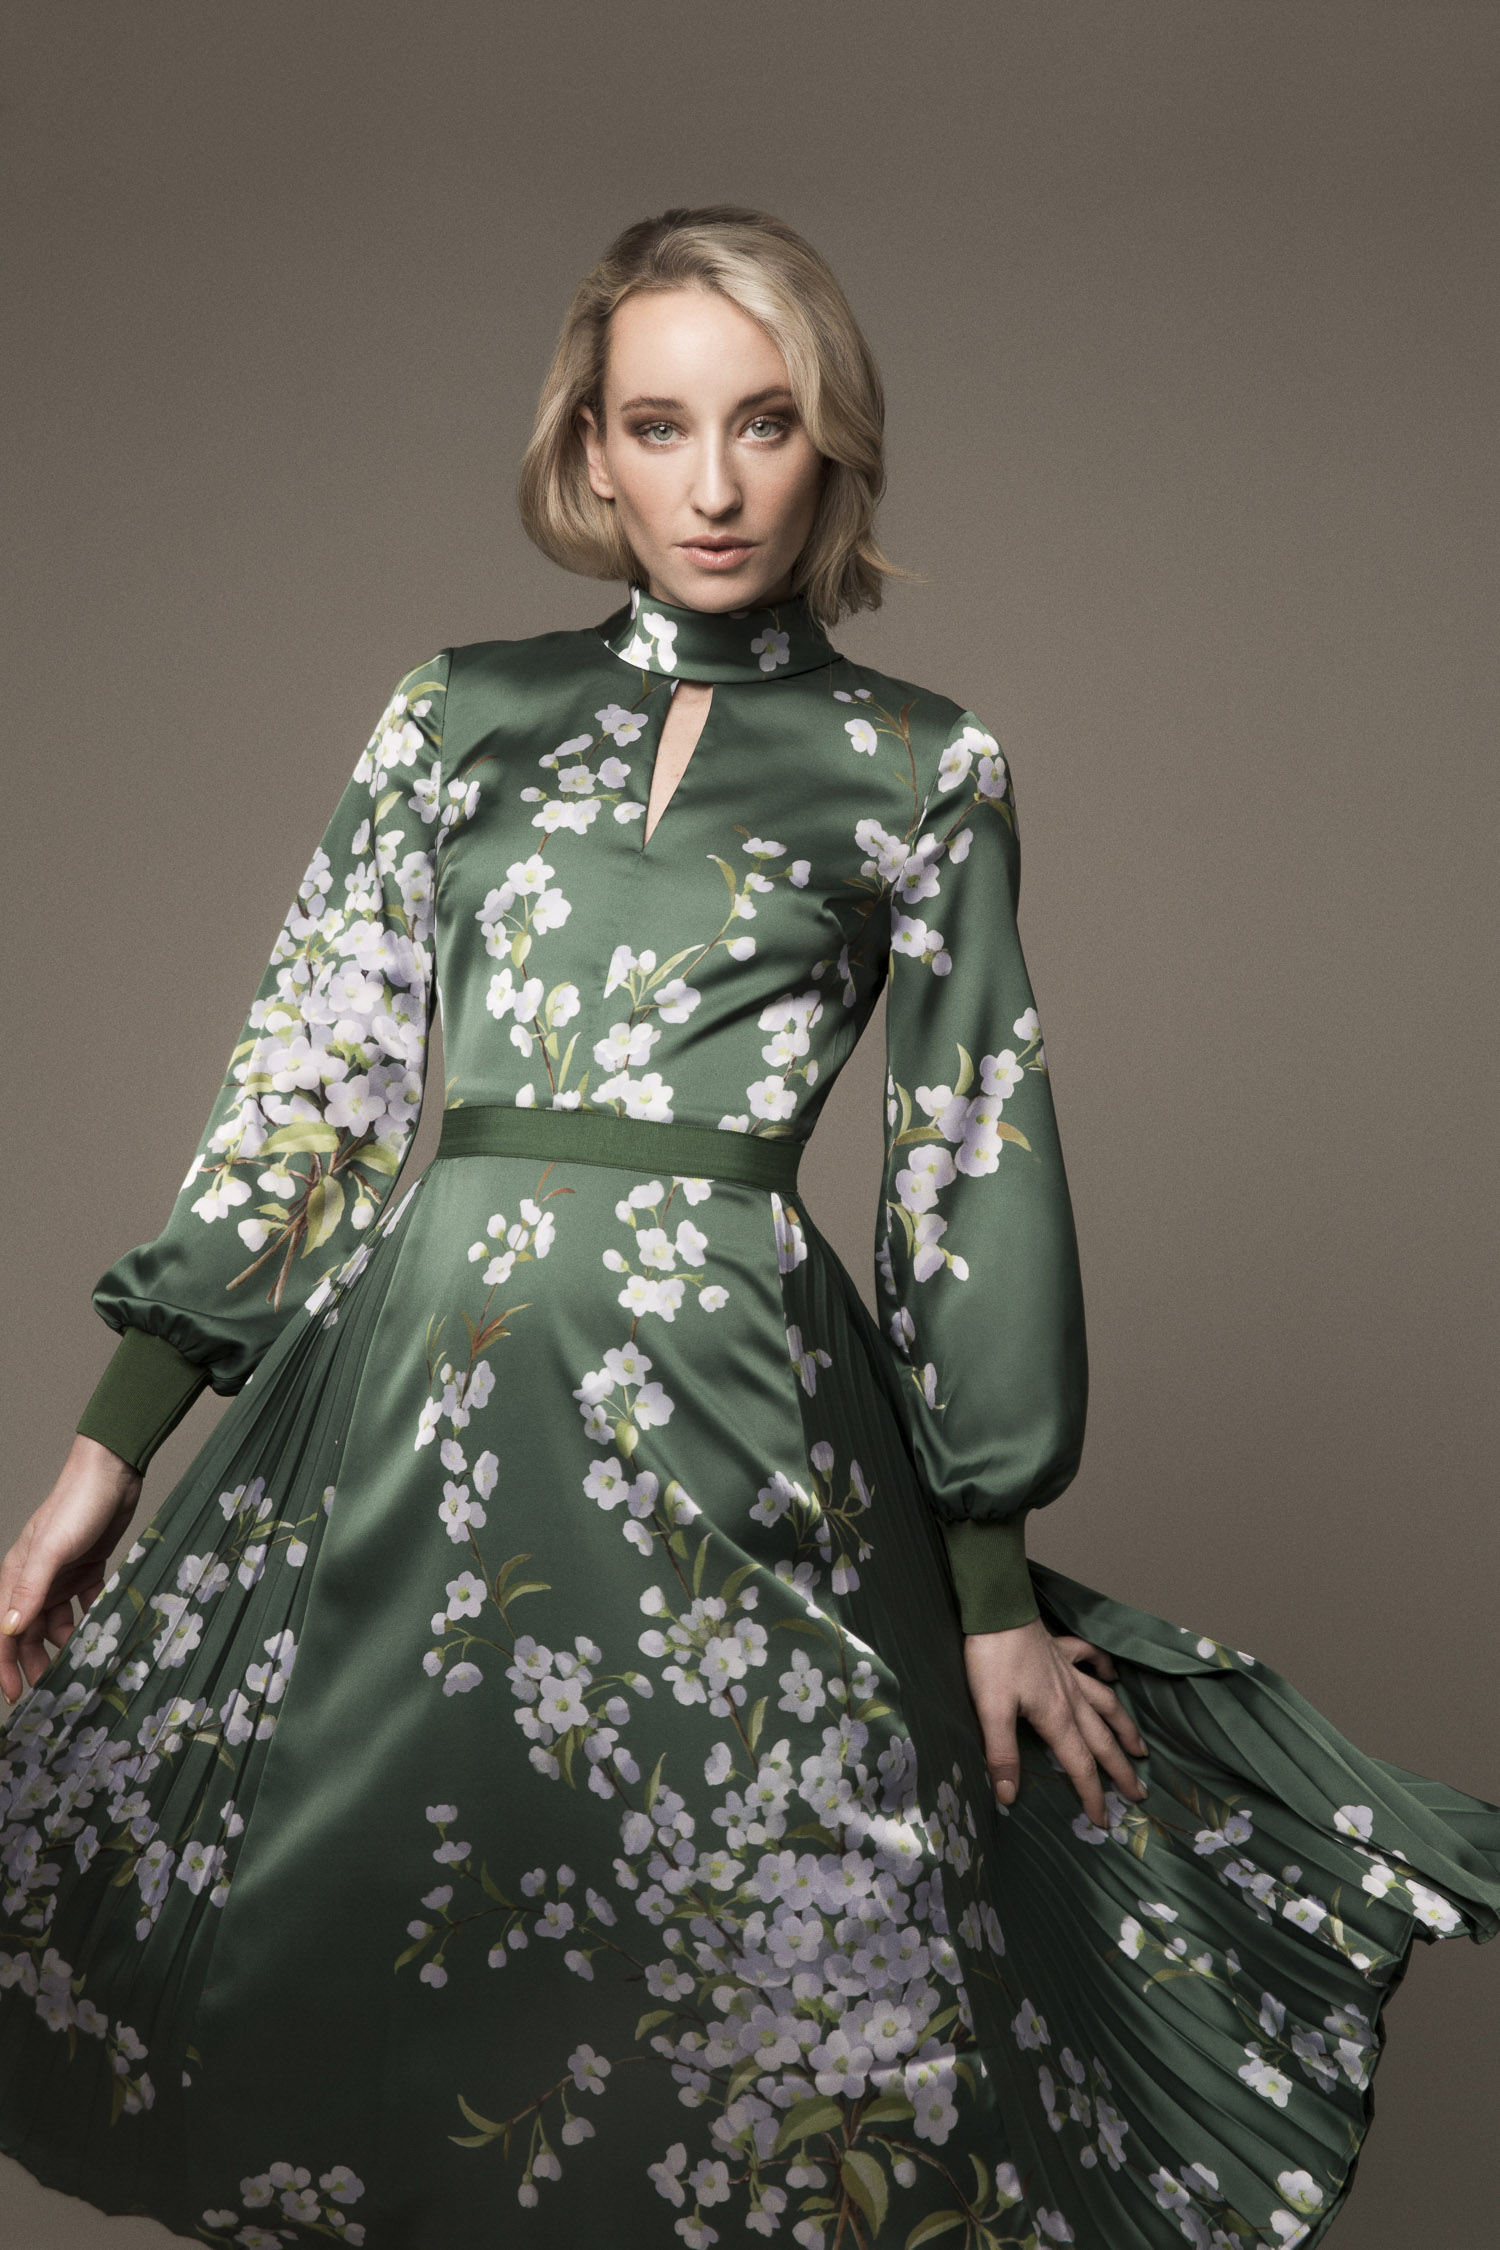 Model in a green Ted Baker dress with long sleeves